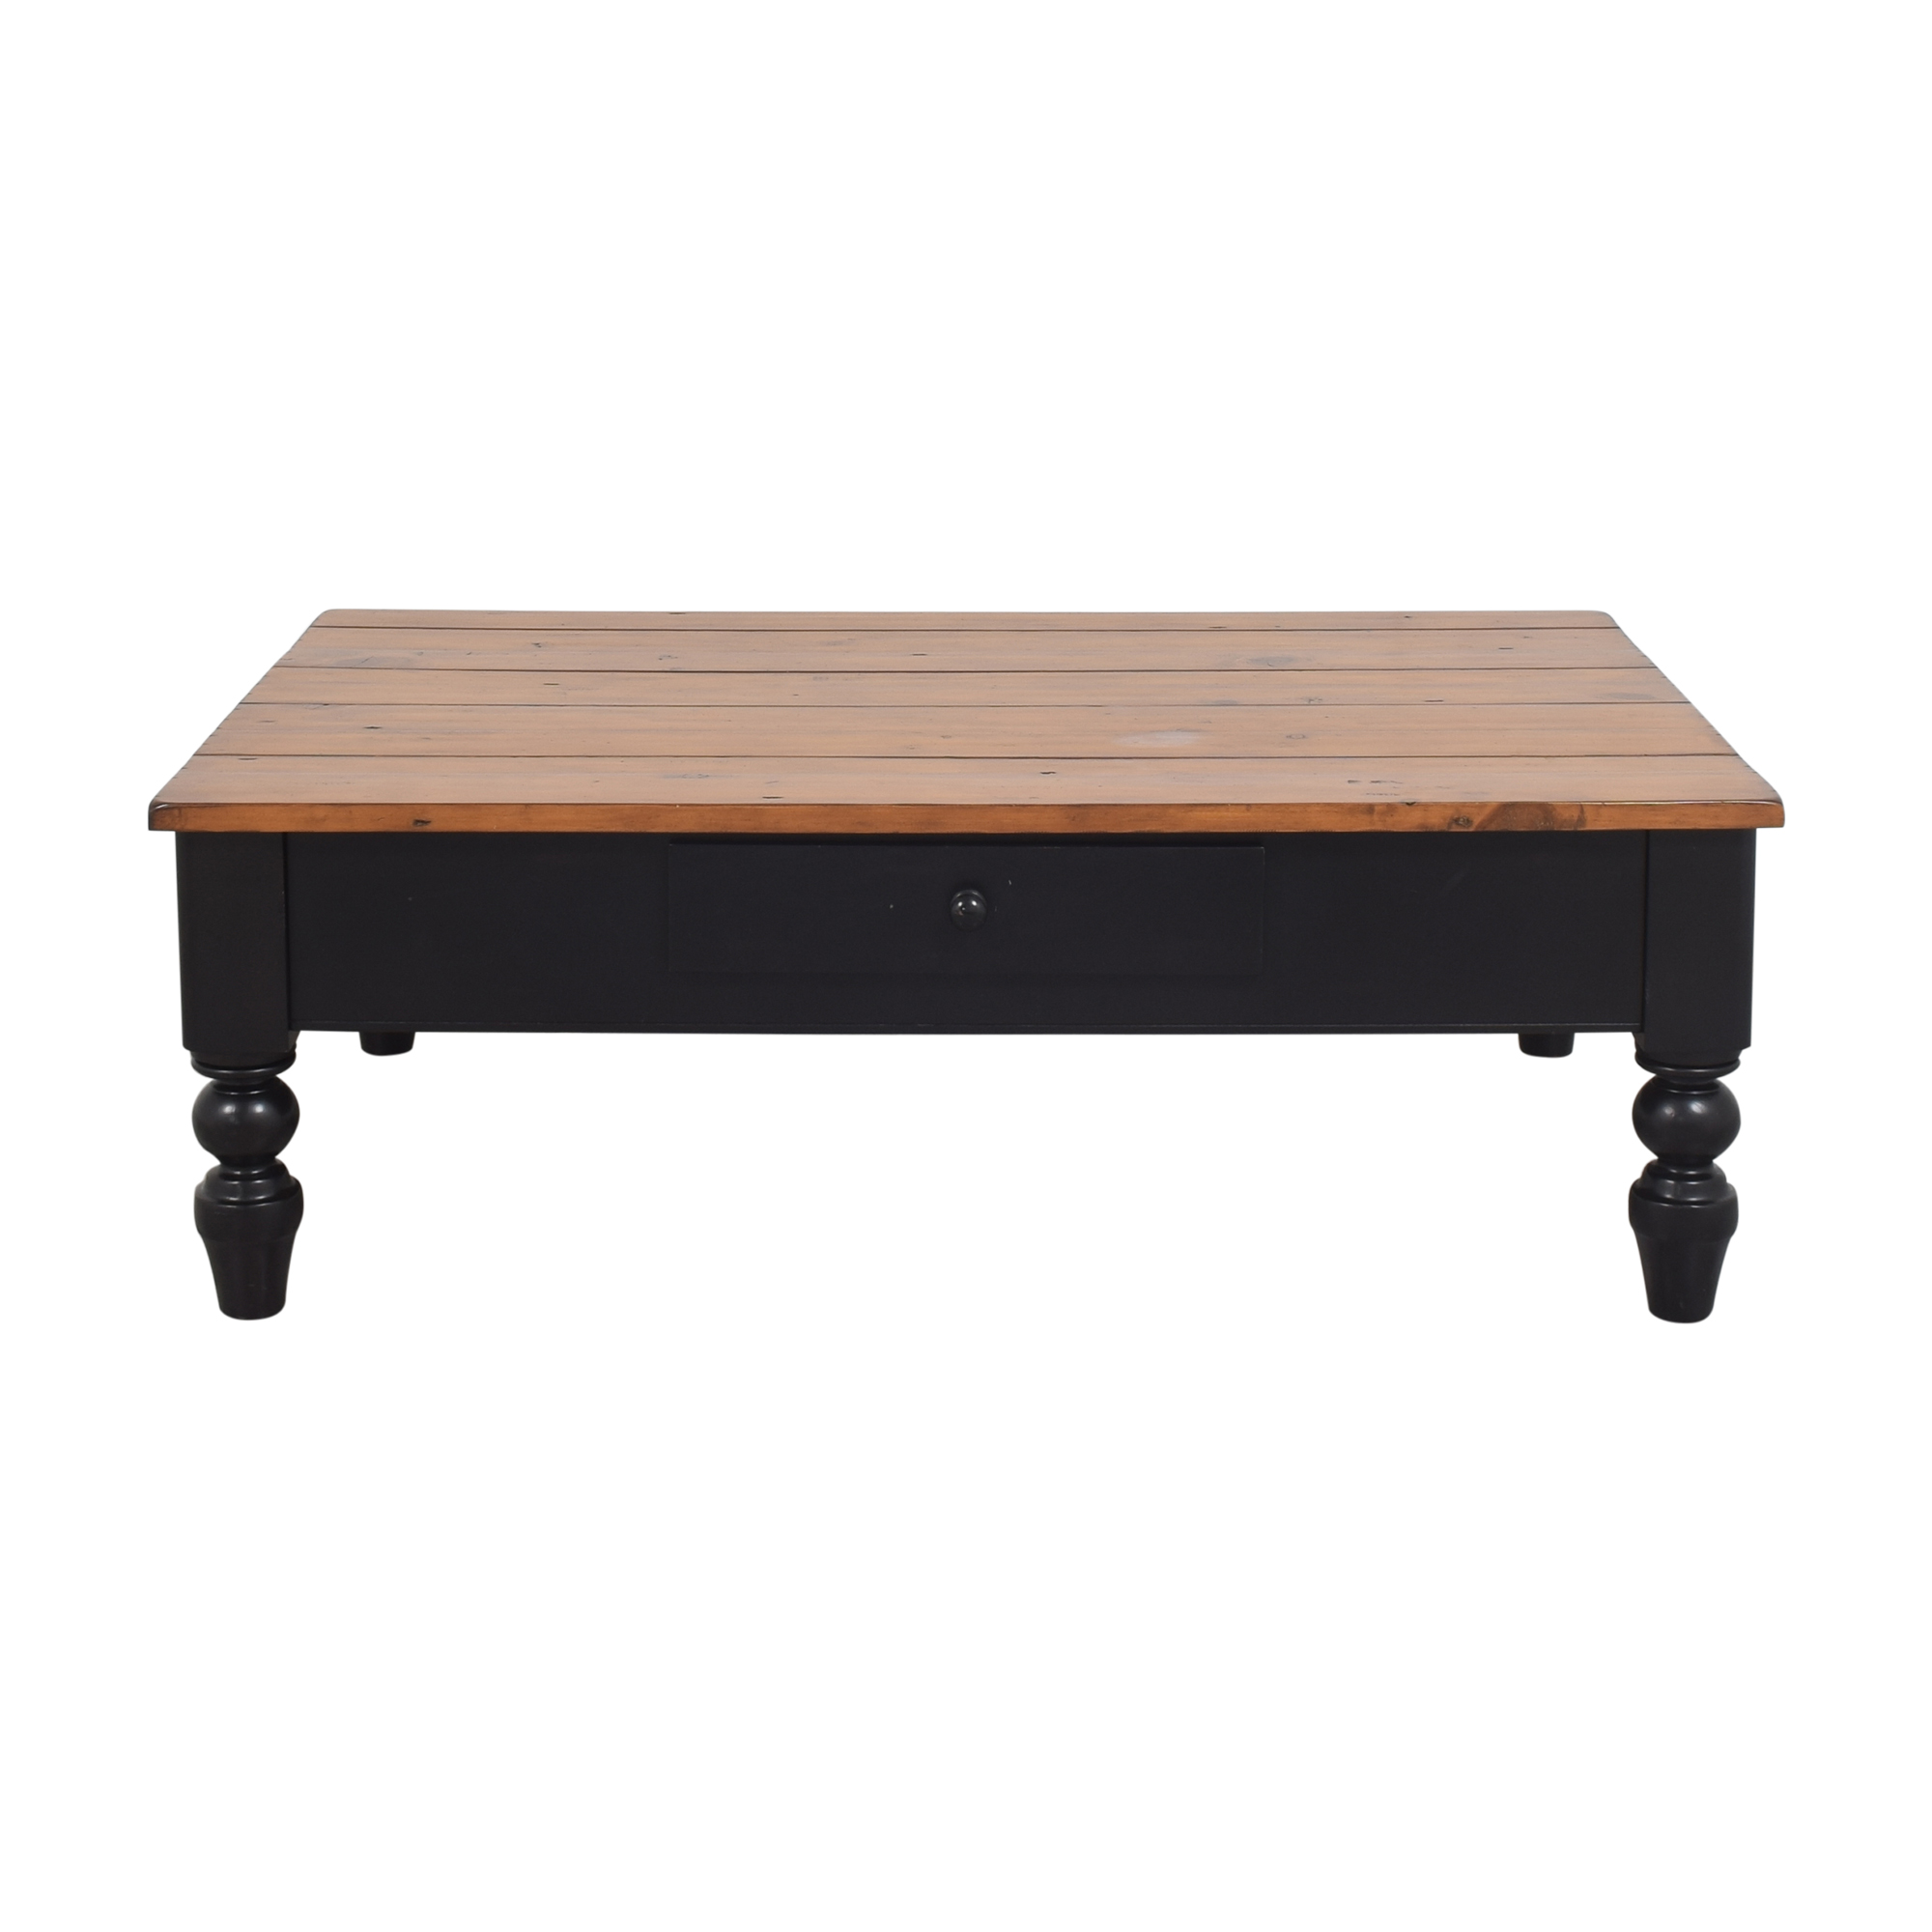 Pottery Barn Pottery Barn Coffee Table with Drawer  brown and black